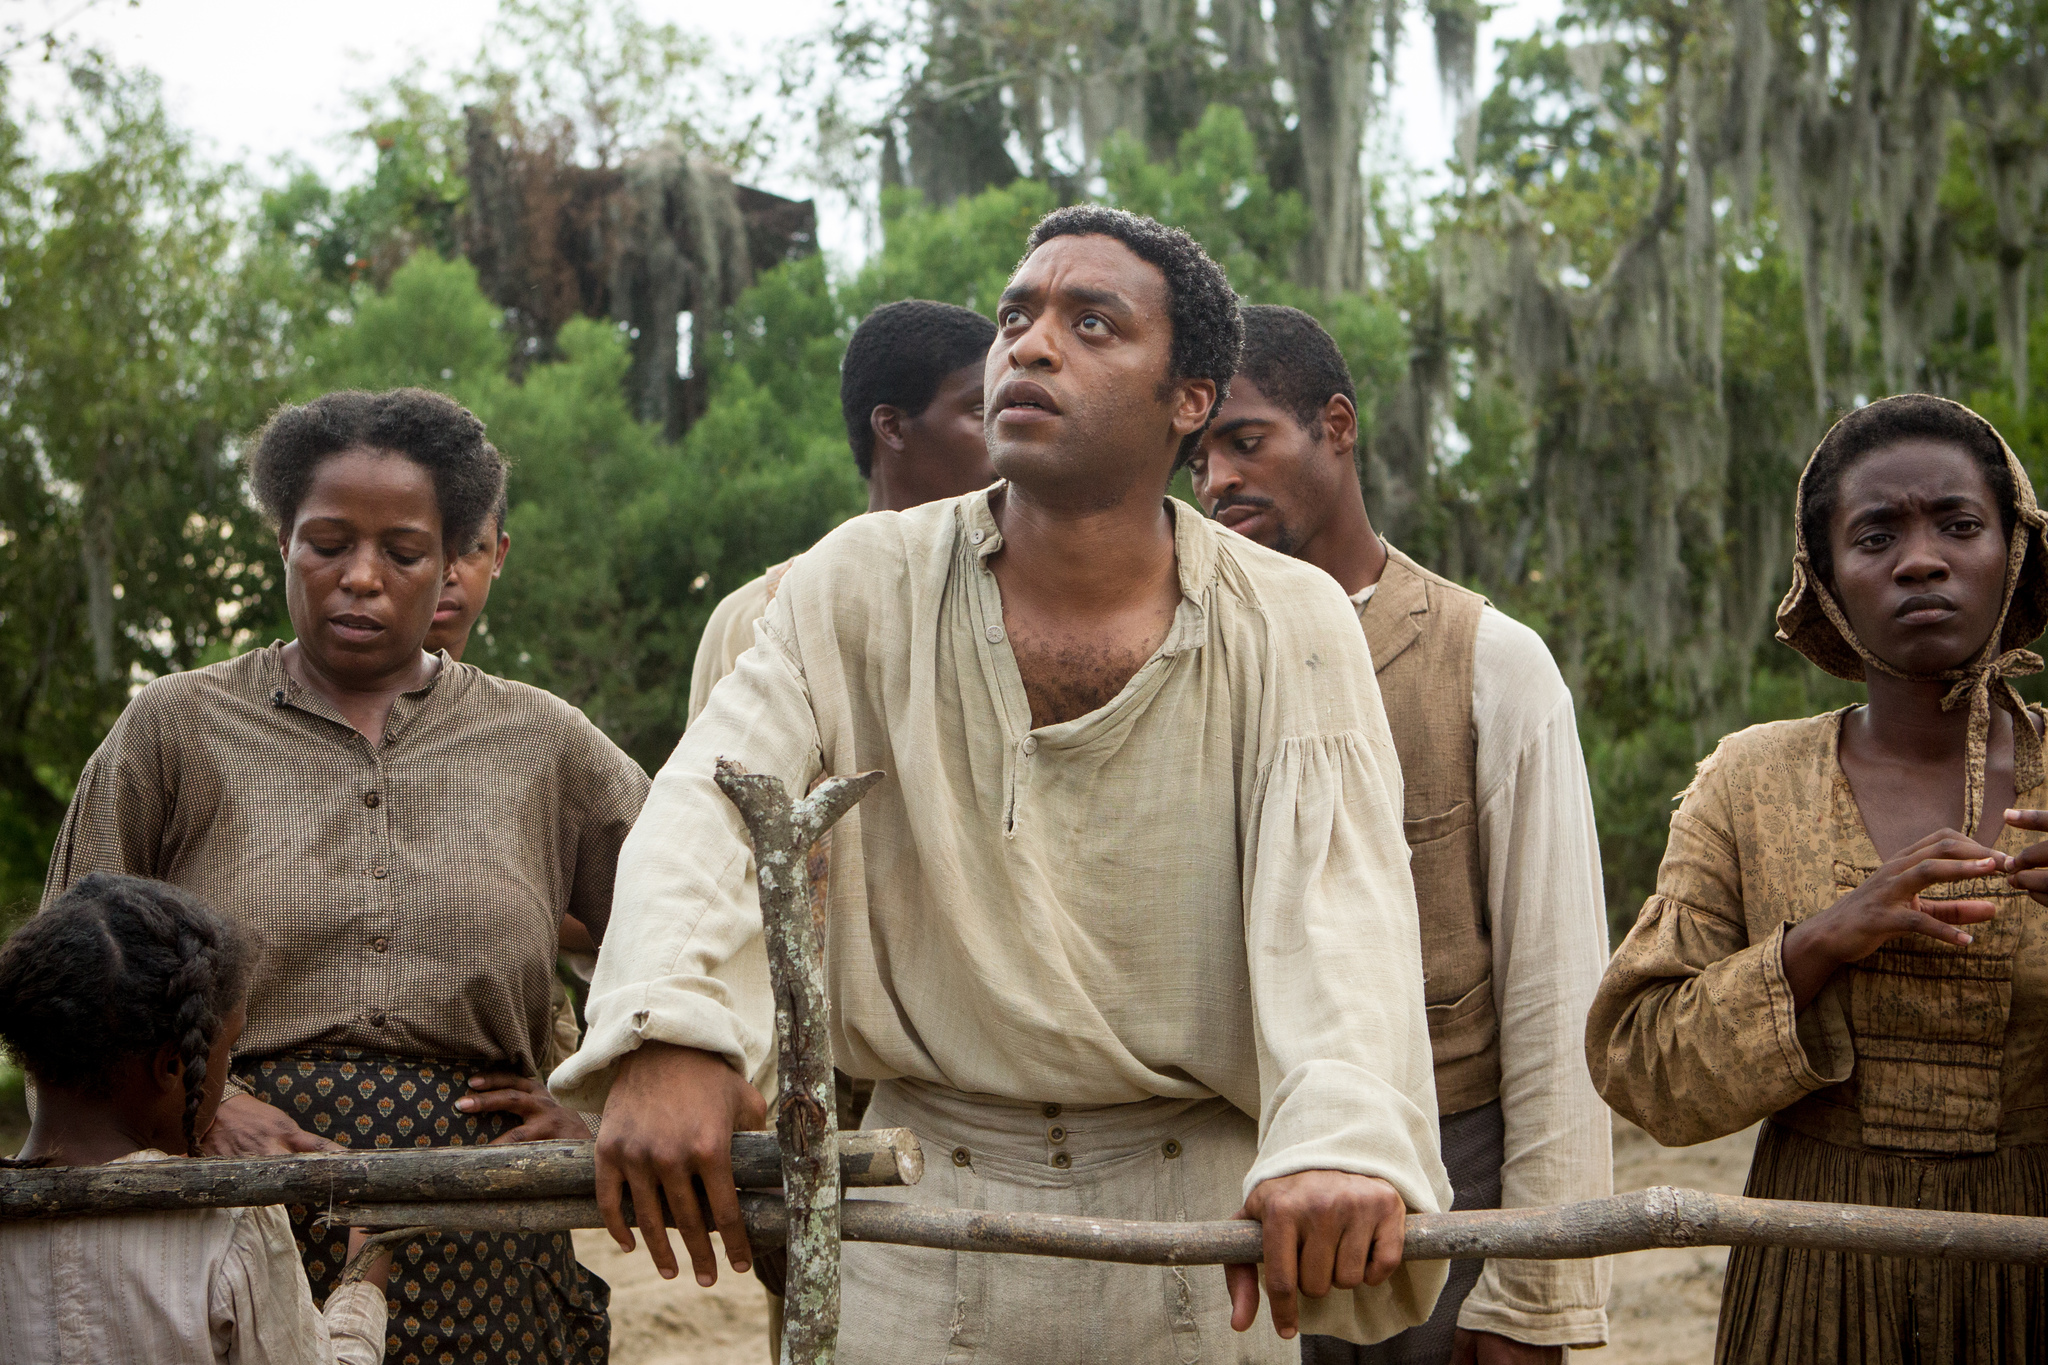 Chiwetel Ejiofor in 12 Years a Slave (2013)